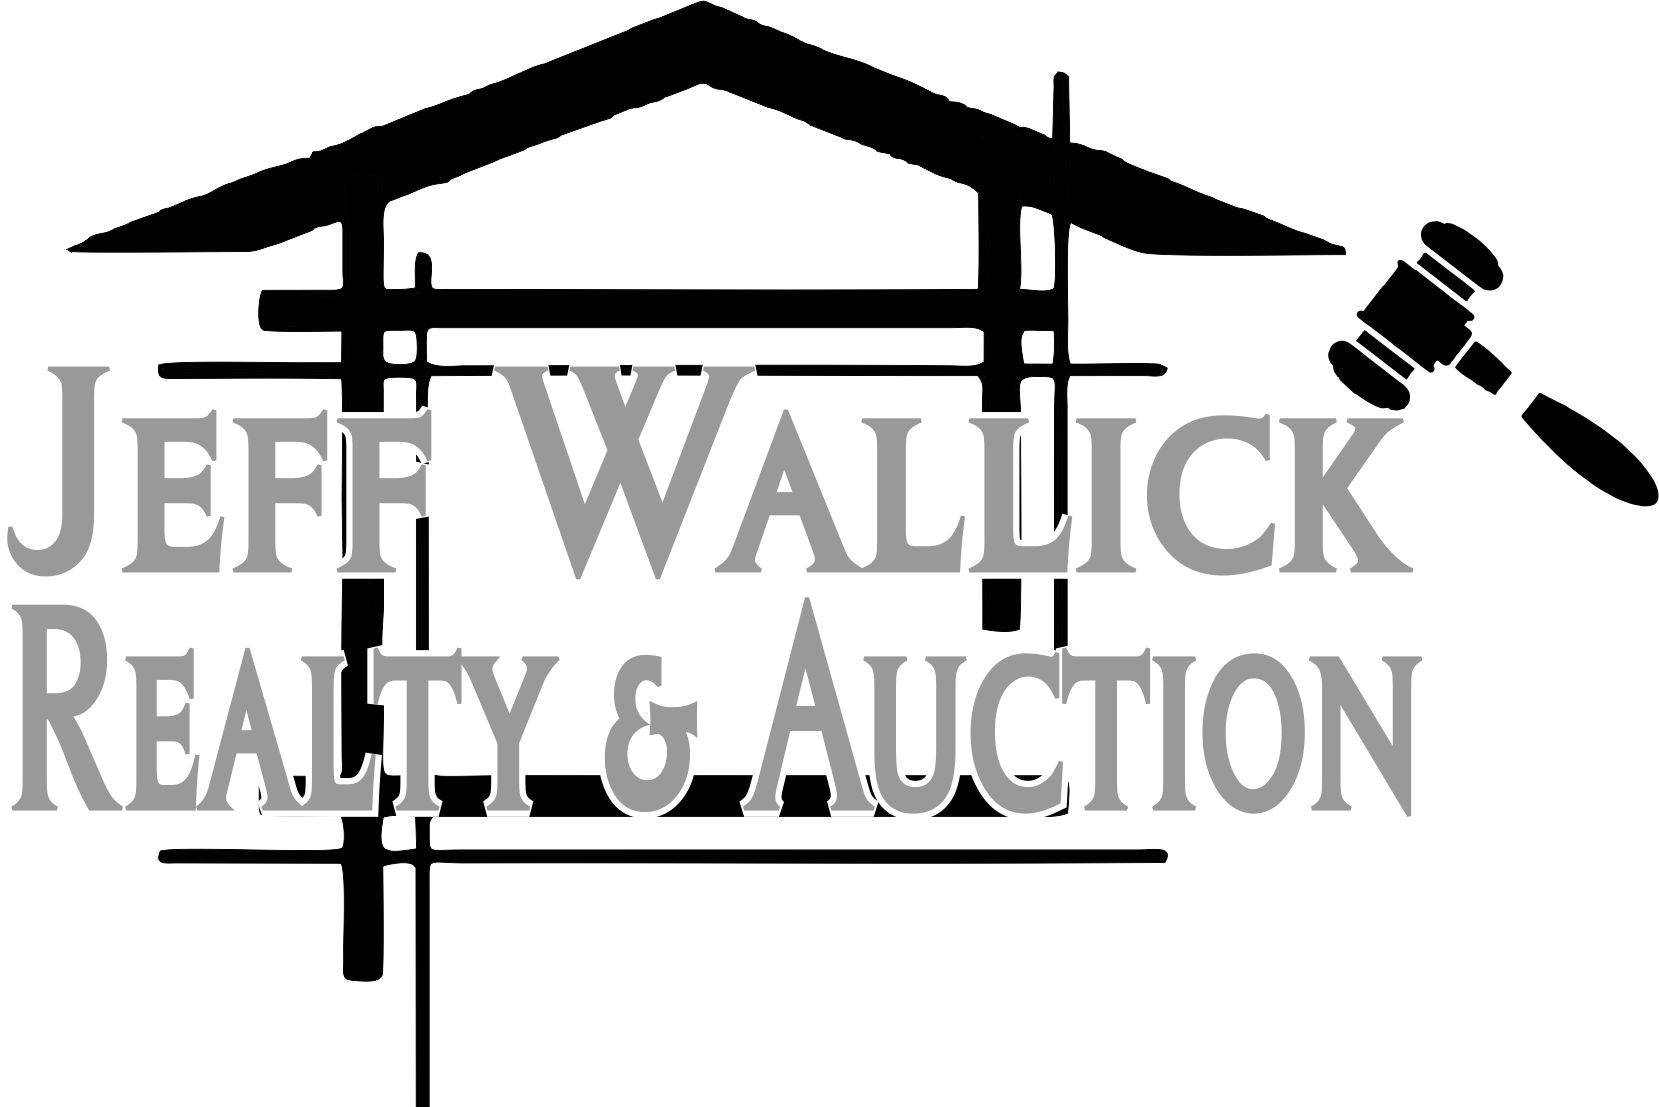 Jeff Wallick Realty & Auctions